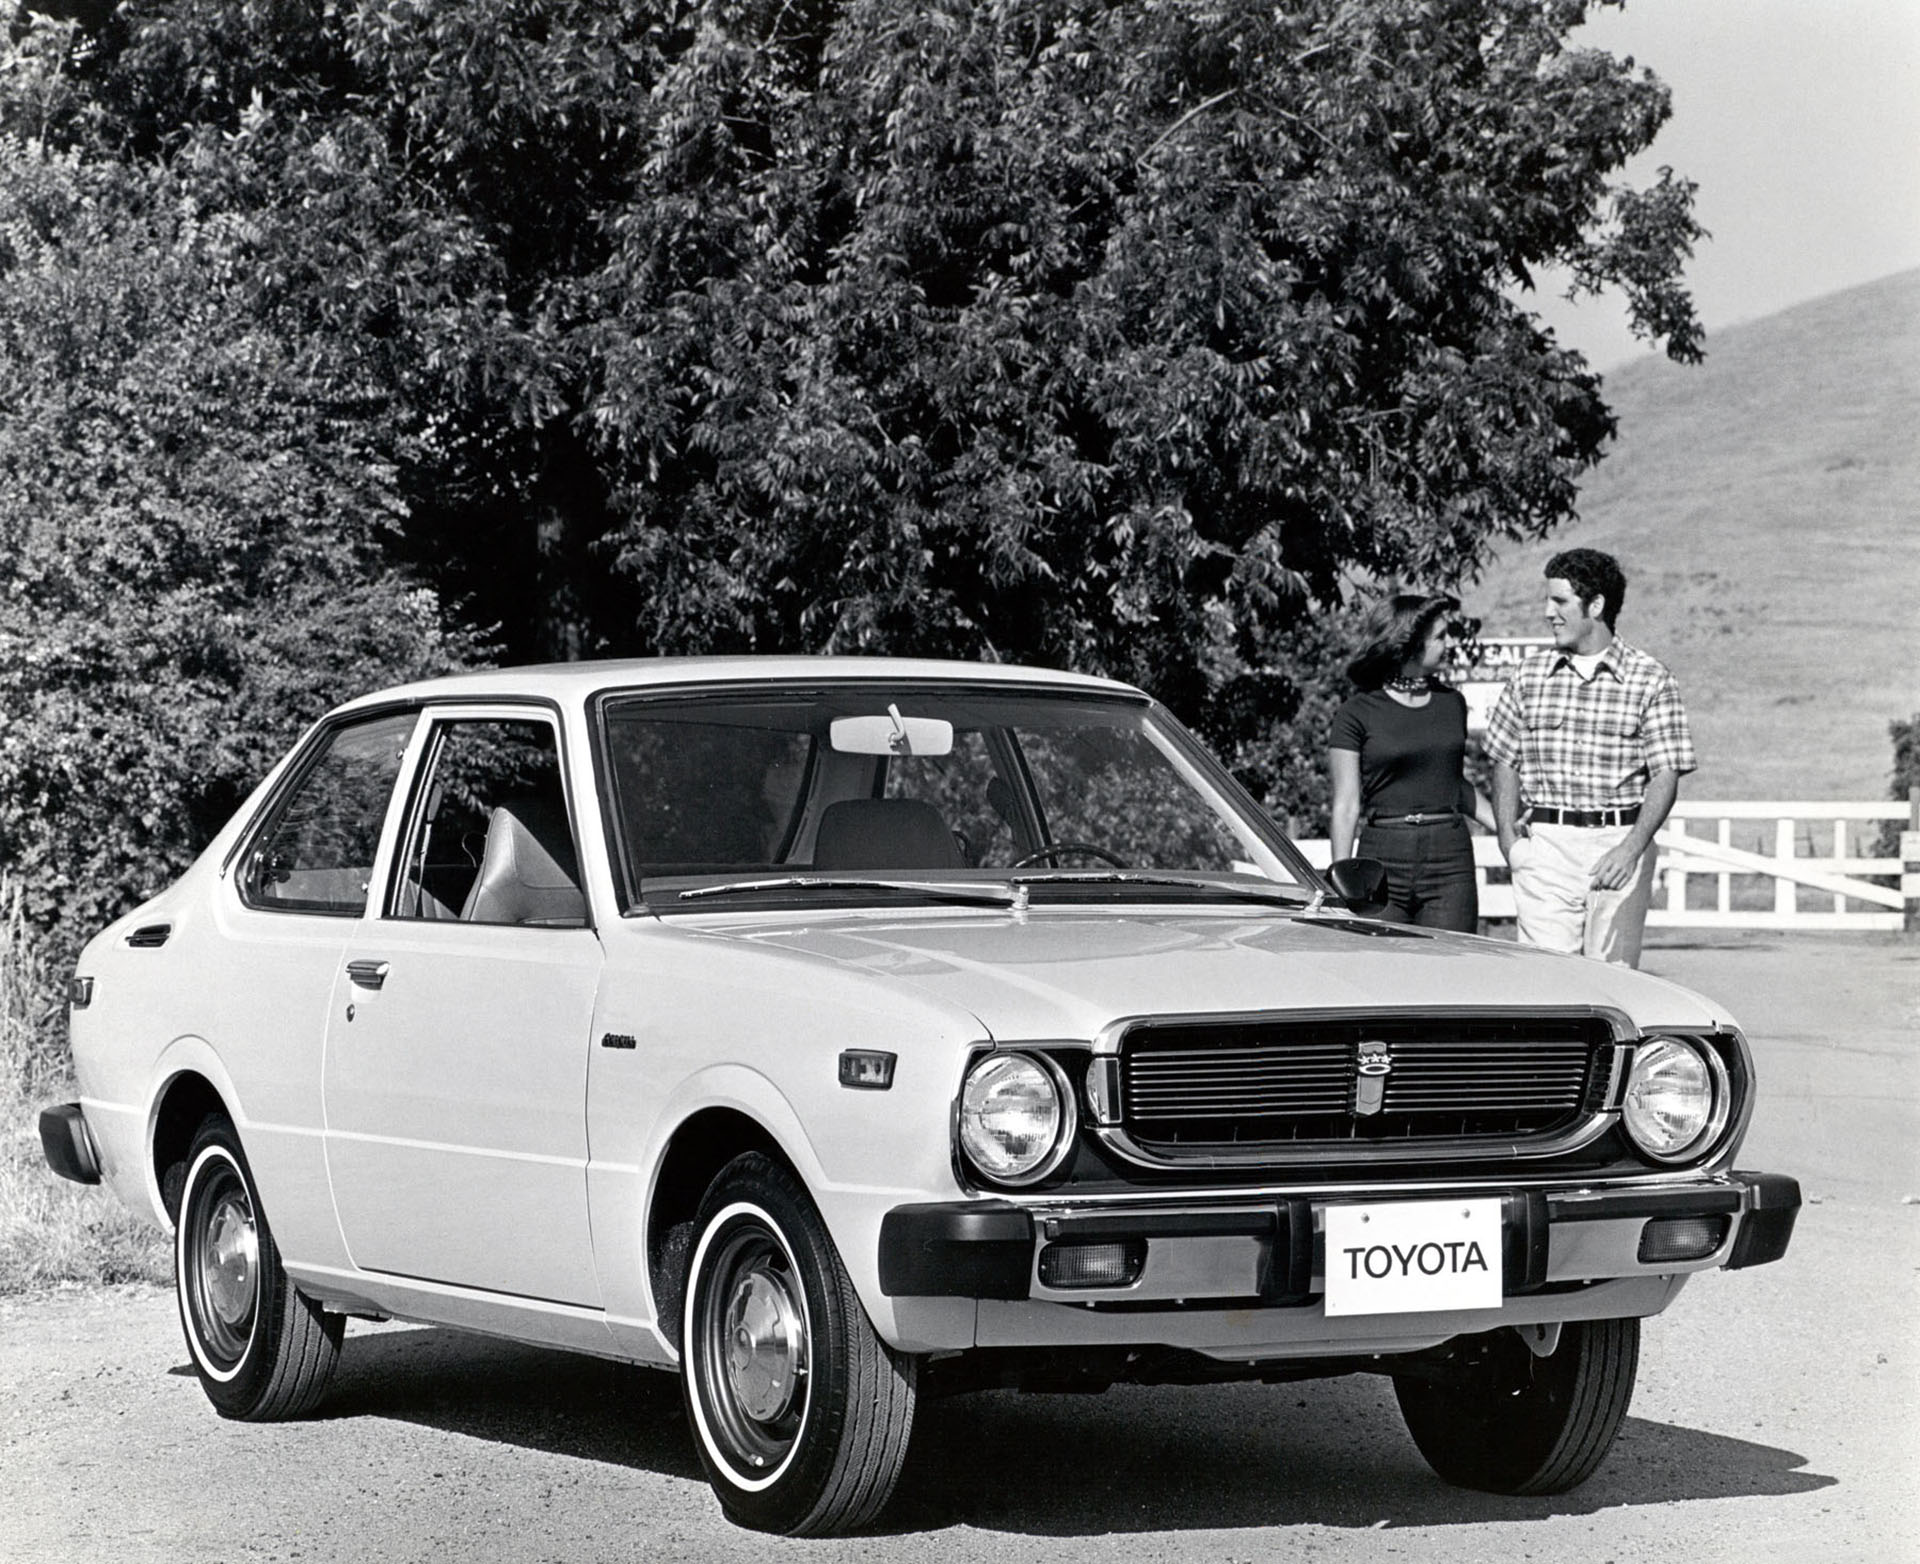 USA - The 3rd Generation Corolla (1975 - 1979)